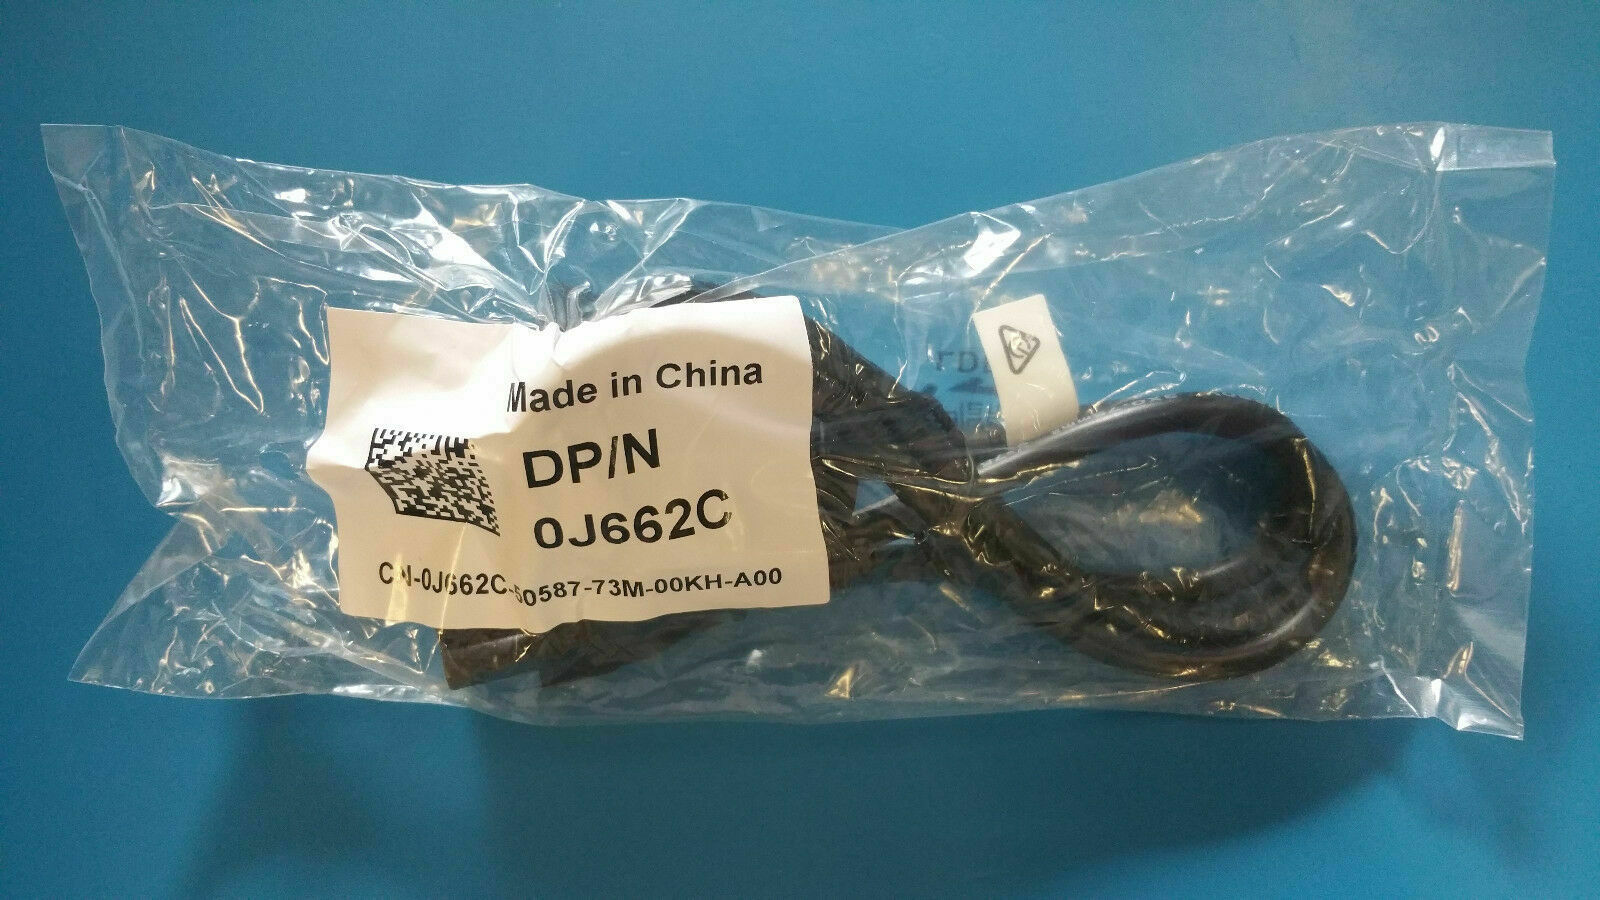 Genuine Dell Power Cord for Power Adapter (IEC-C5 3 PIN) 0J662C J662C